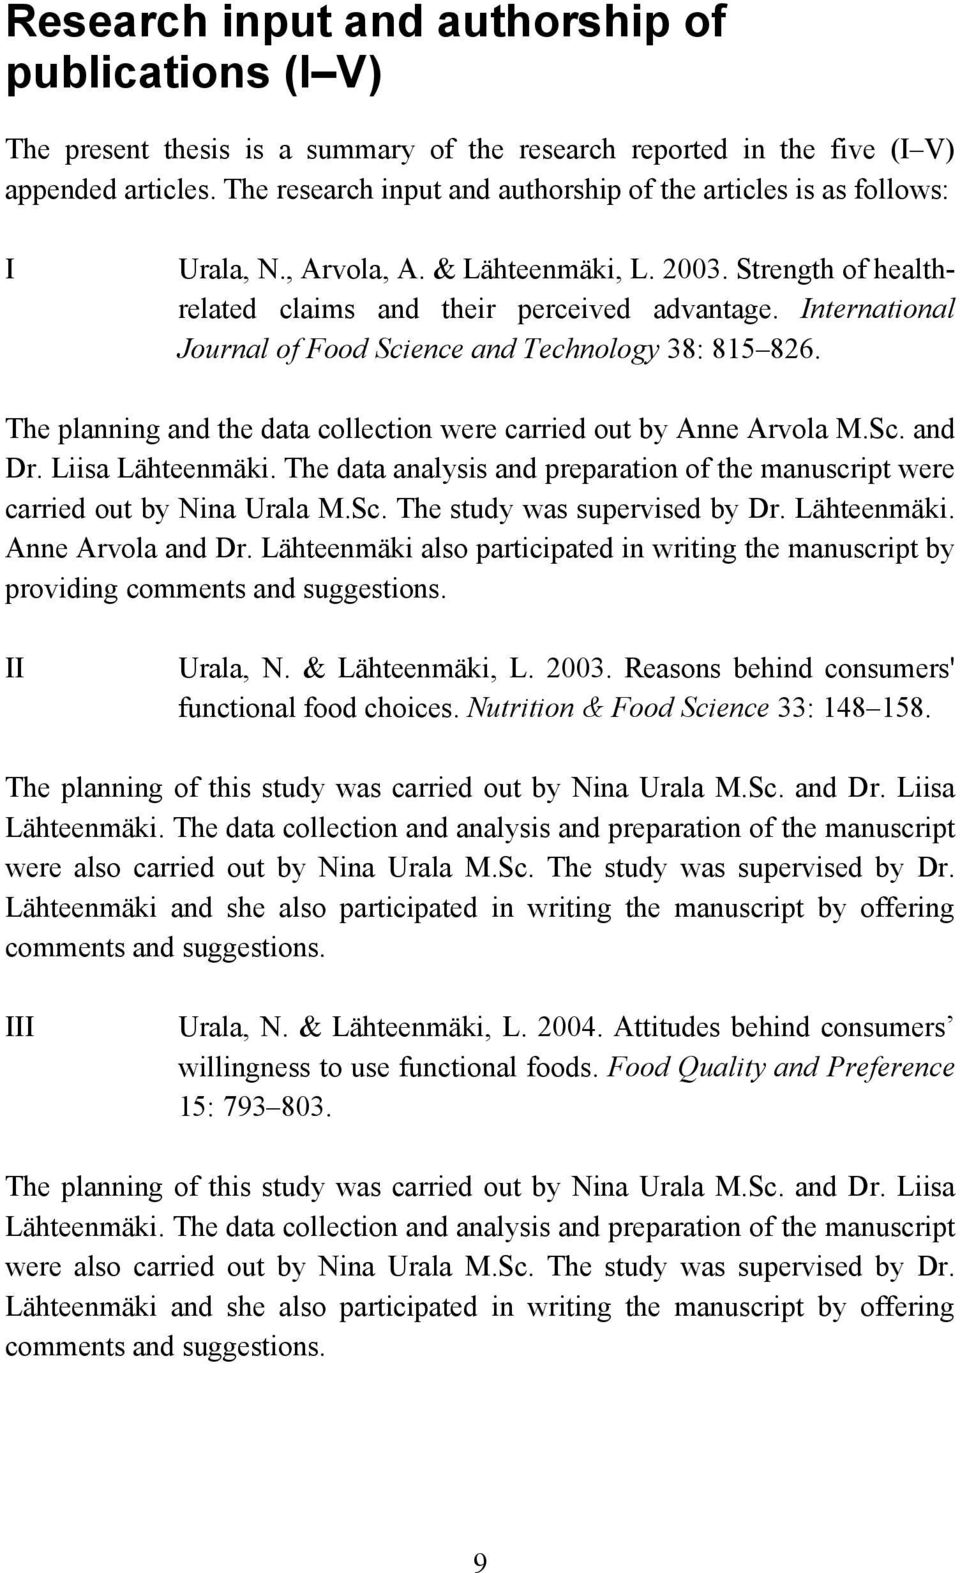 International Journal of Food Science and Technology 38: 815 826. The planning and the data collection were carried out by Anne Arvola M.Sc. and Dr. Liisa Lähteenmäki.